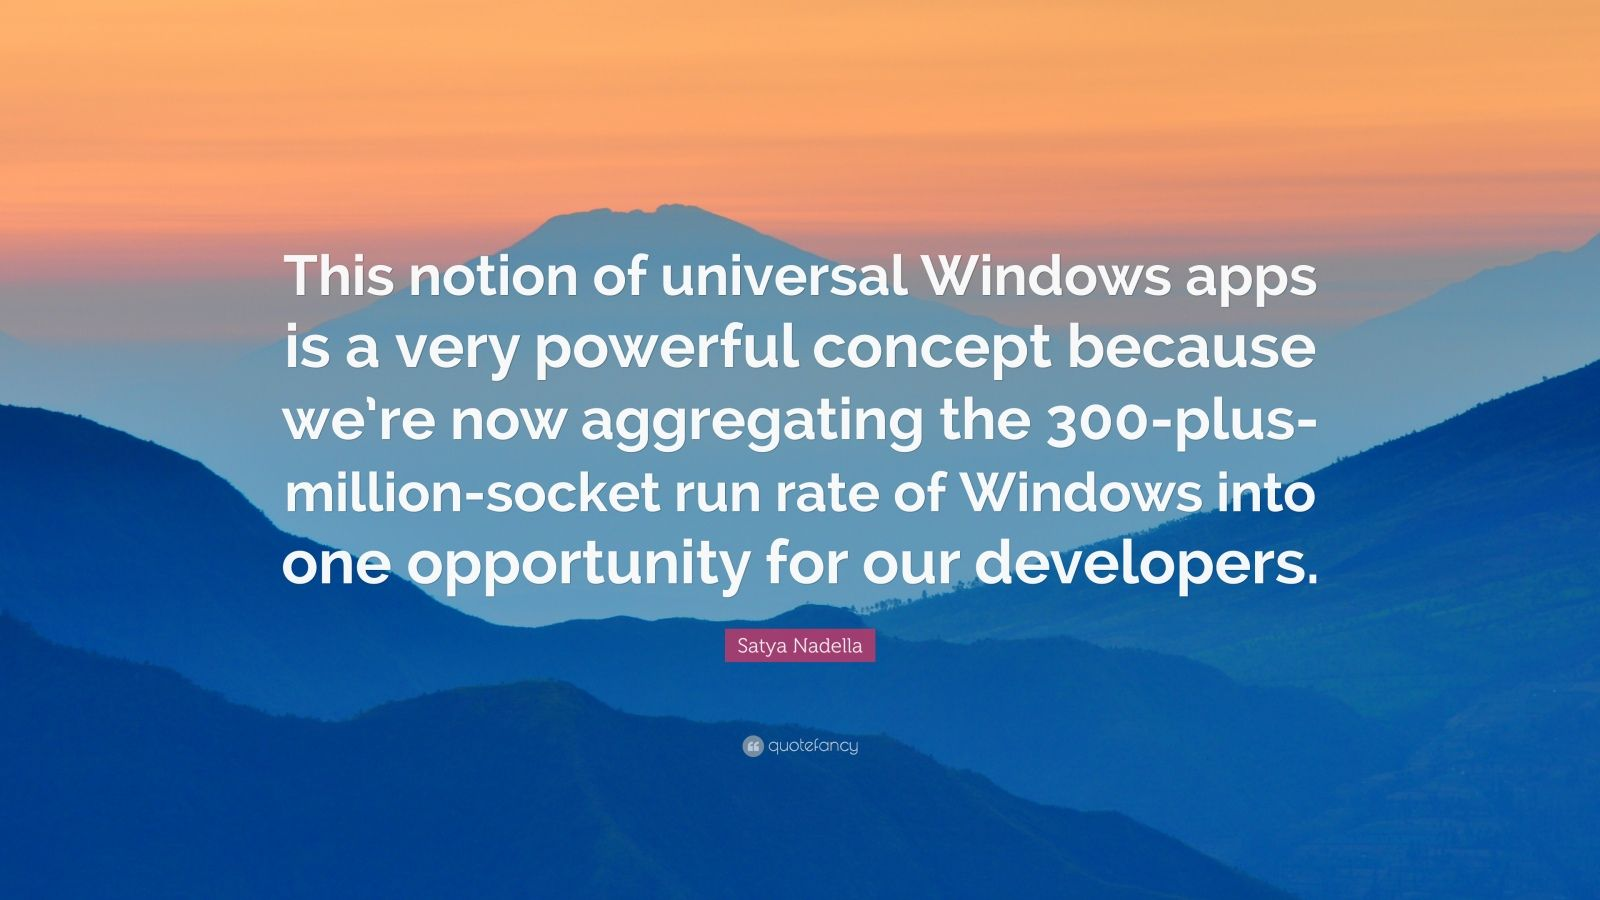 """Satya Nadella Quote: """"This notion of universal Windows apps is a very powerful concept because we're now aggregating the 300-plus-million-socket run rate of Windows into one opportunity for our developers."""""""